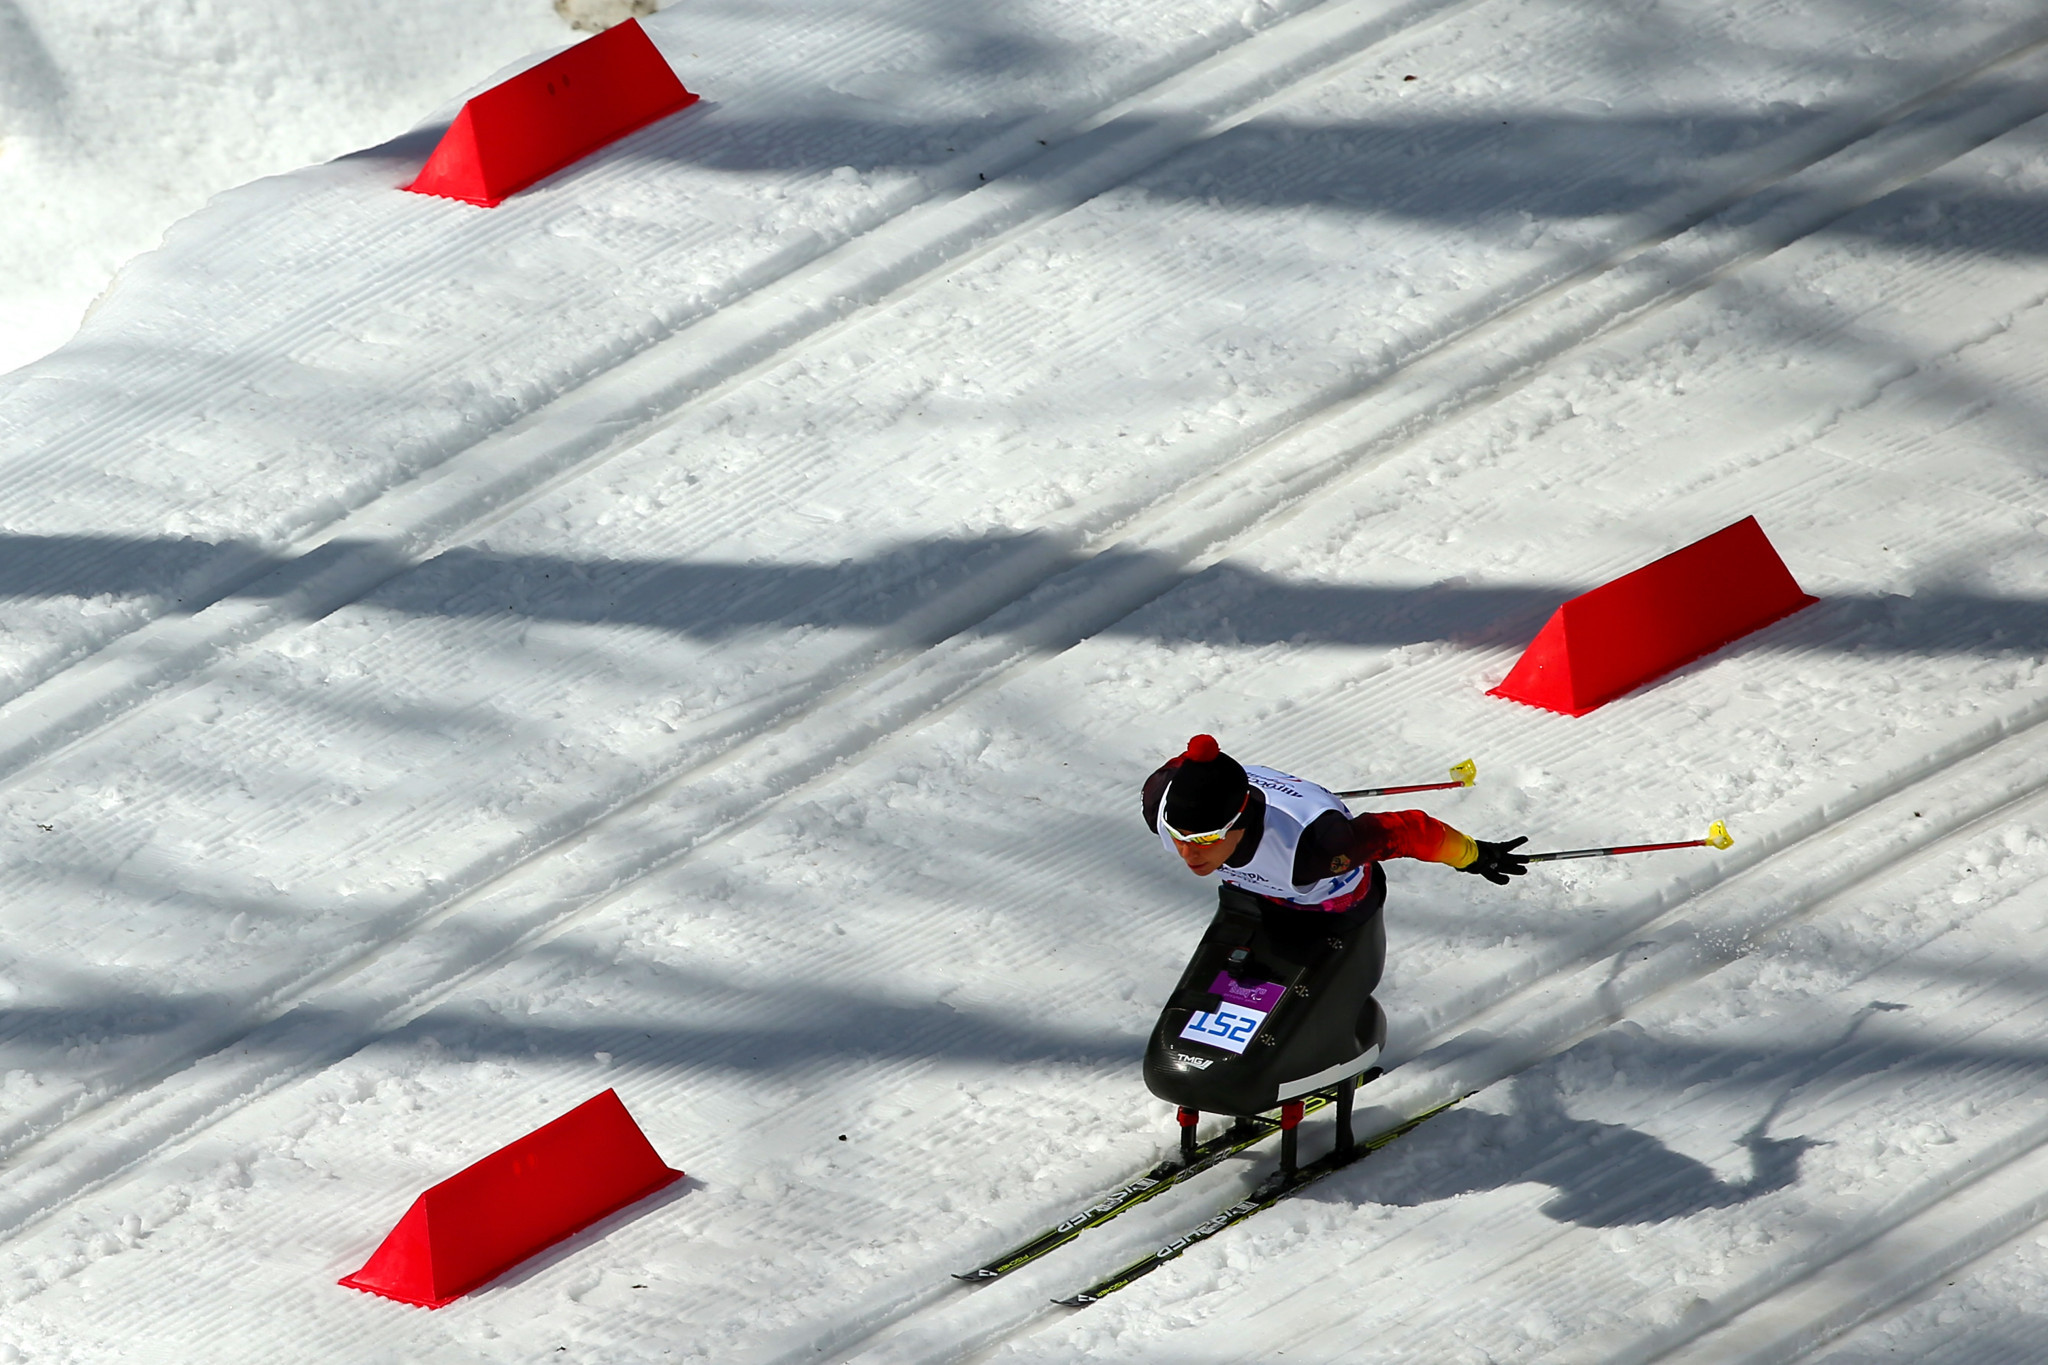 Andrea Eskau has represented Germany in both the Winter and Summer Paralympics ©Getty Images